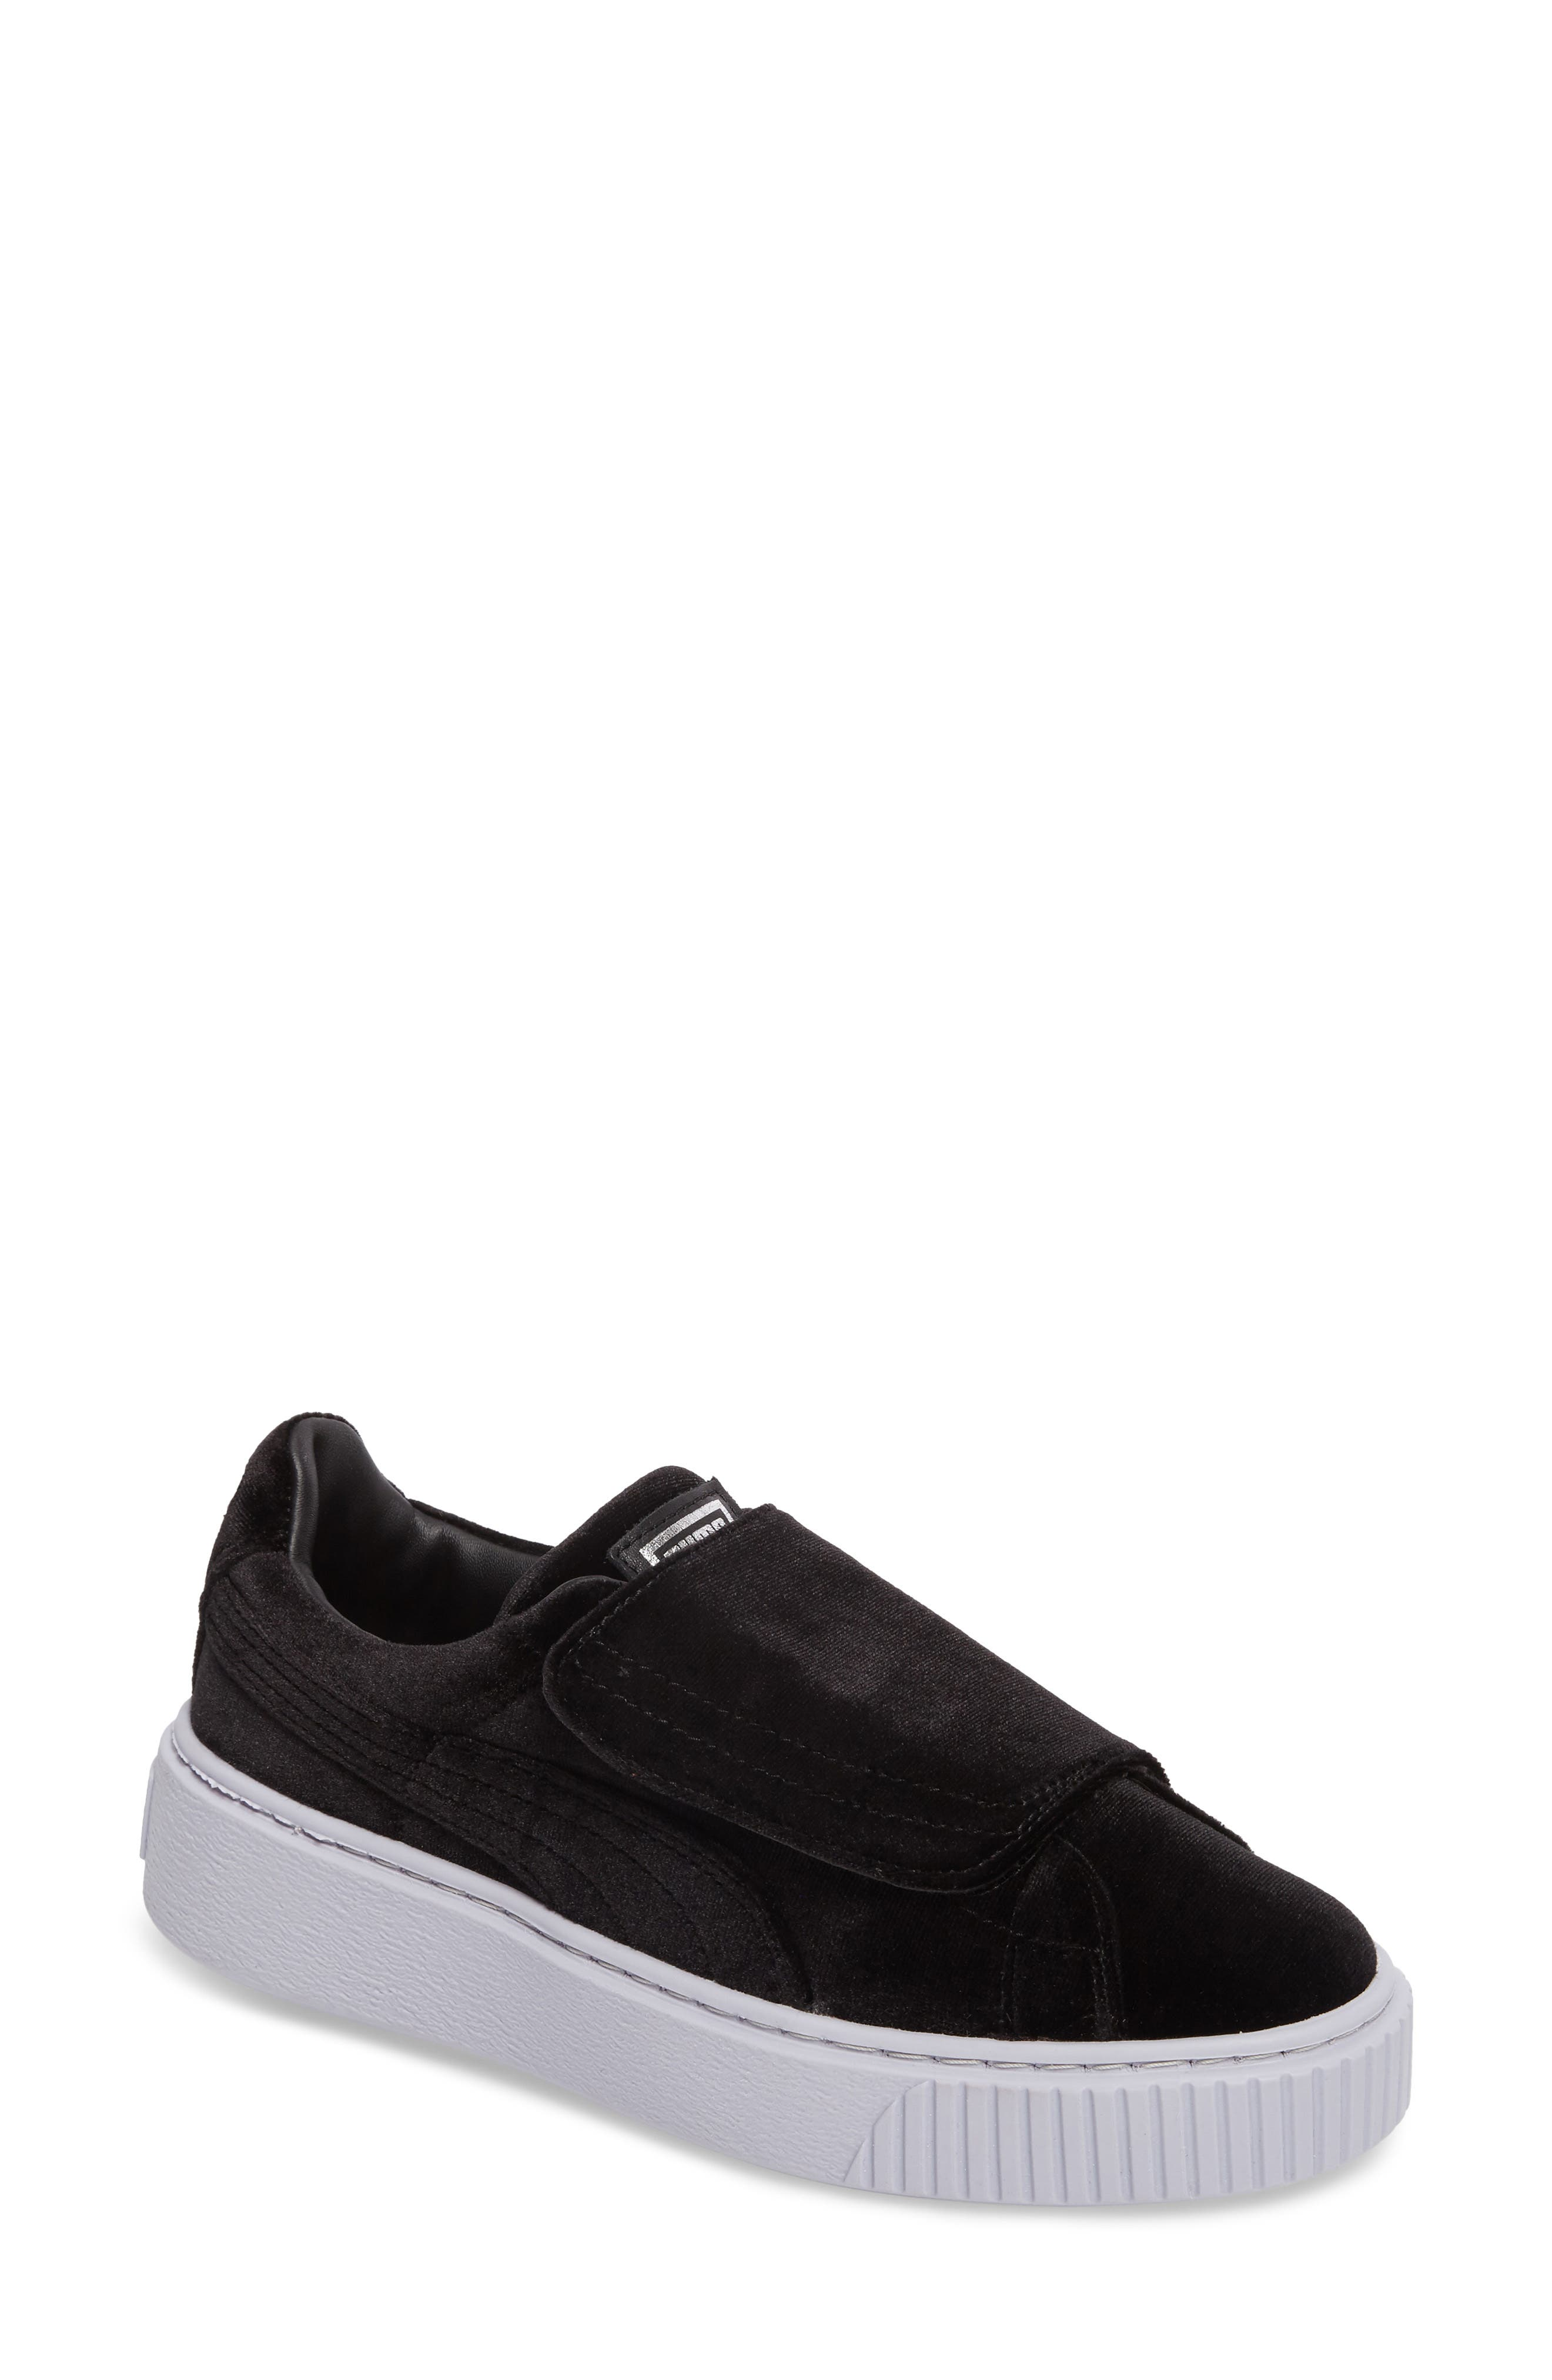 Basket Platform Sneaker,                             Main thumbnail 1, color,                             Black/ Black/ Icelandic Blue